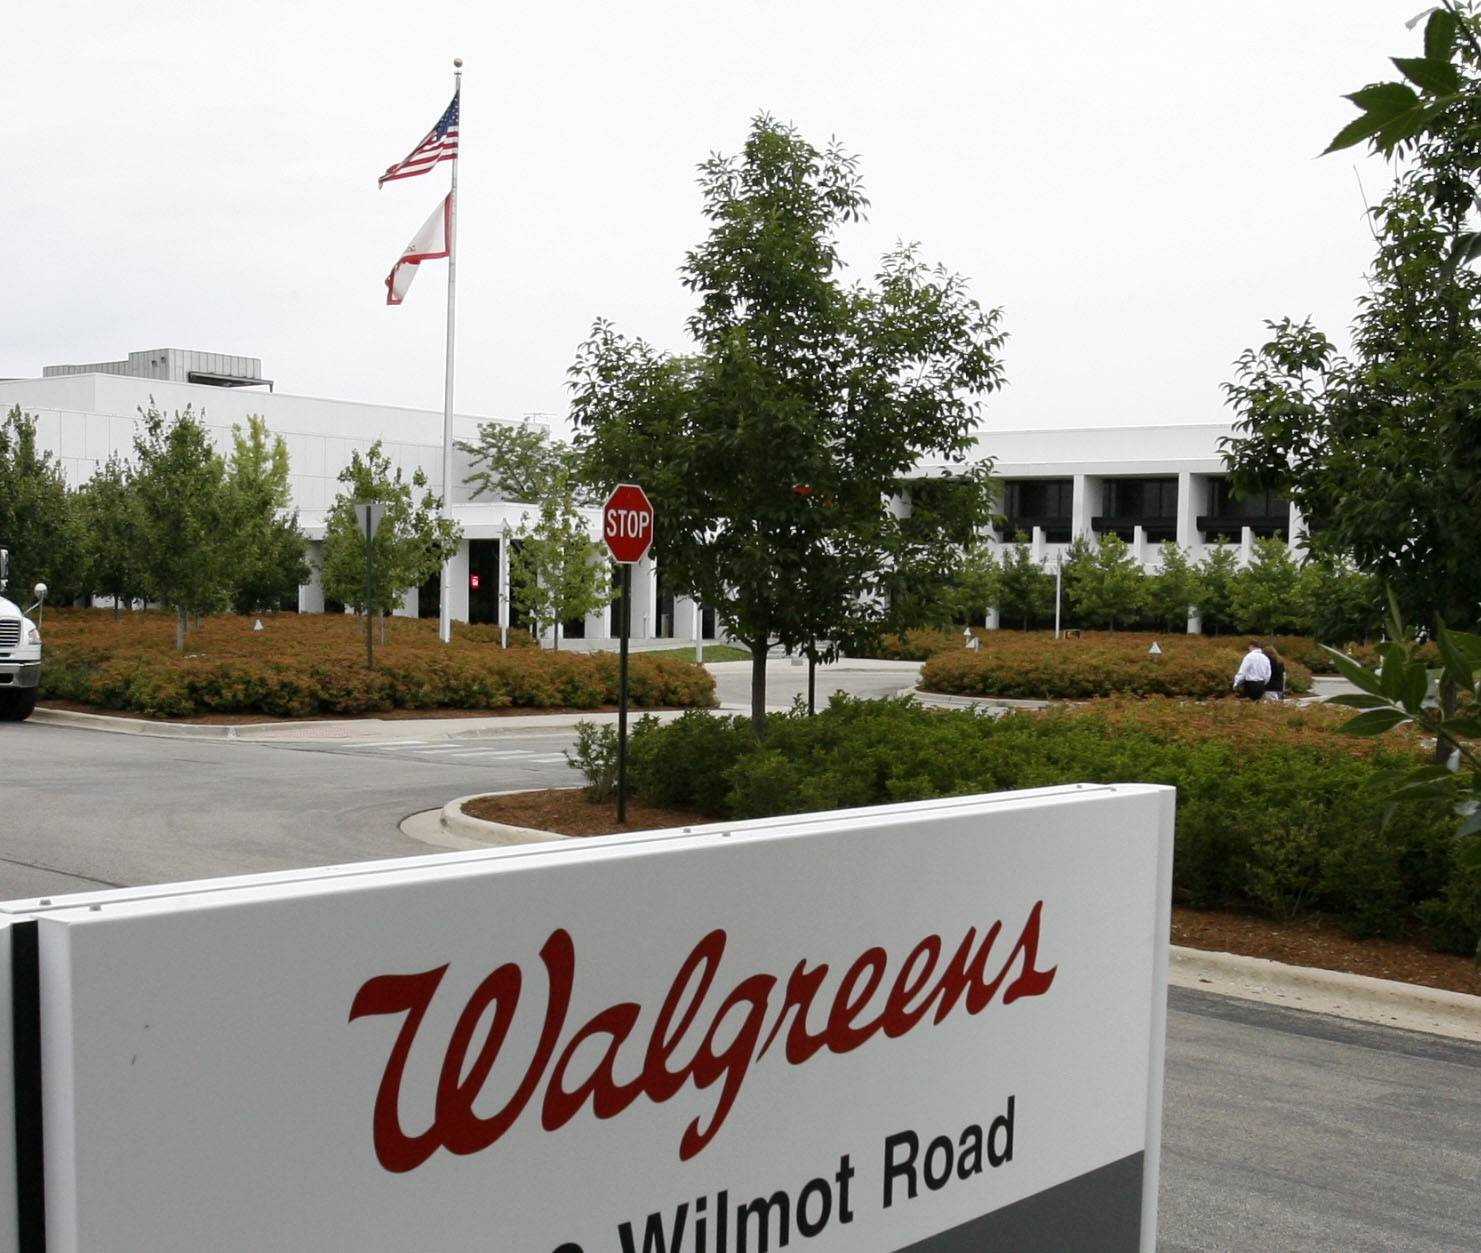 Deerfield-based Walgreen Co. said Wednesday that a key sales figure rose last month, boosted by stronger growth at its pharmacies and an increase in the number of flu shots it administered.